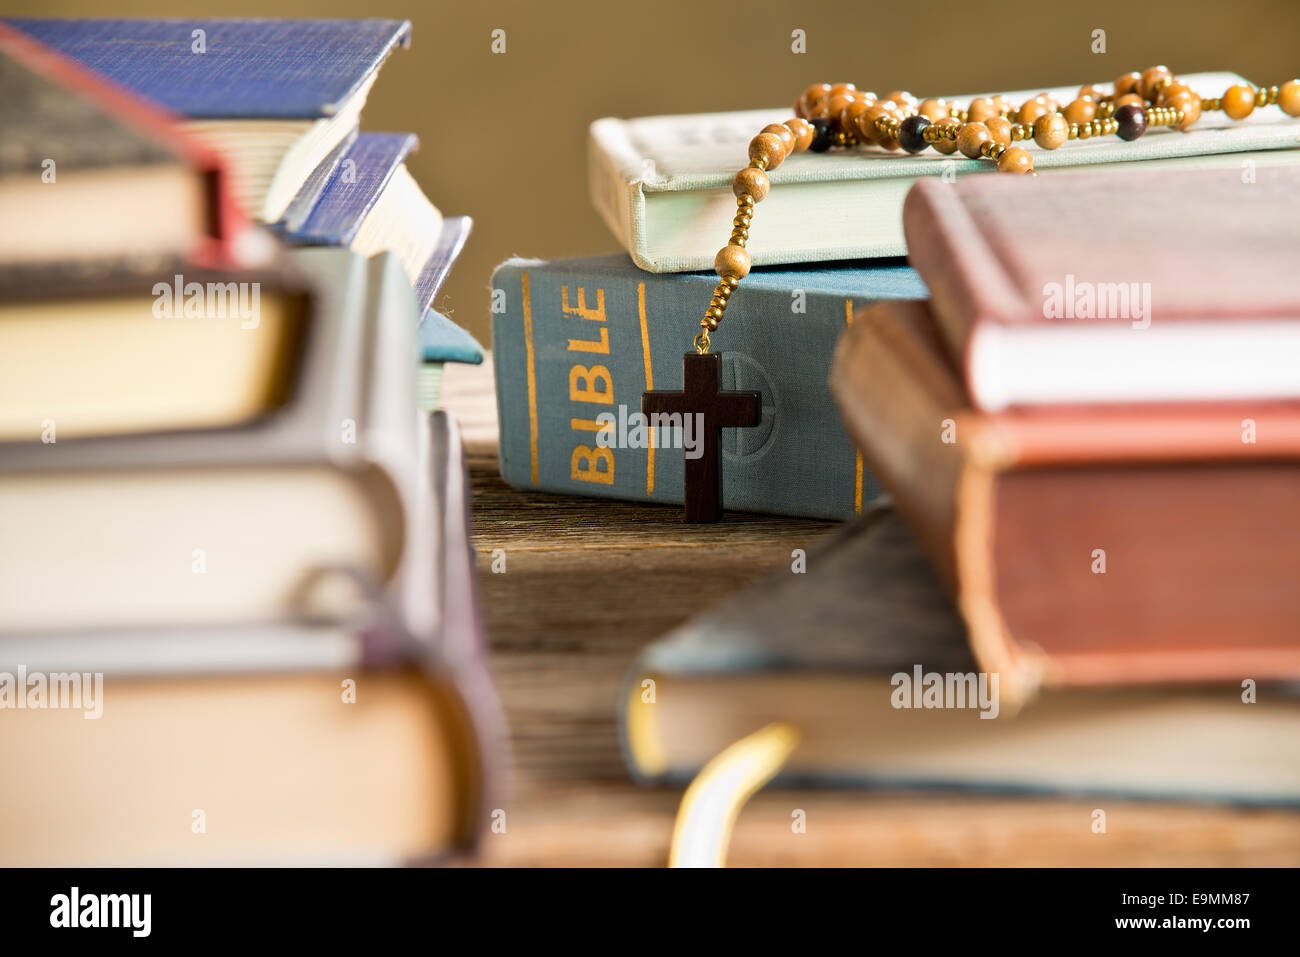 Bible Books And Rosary In The Bookshelf